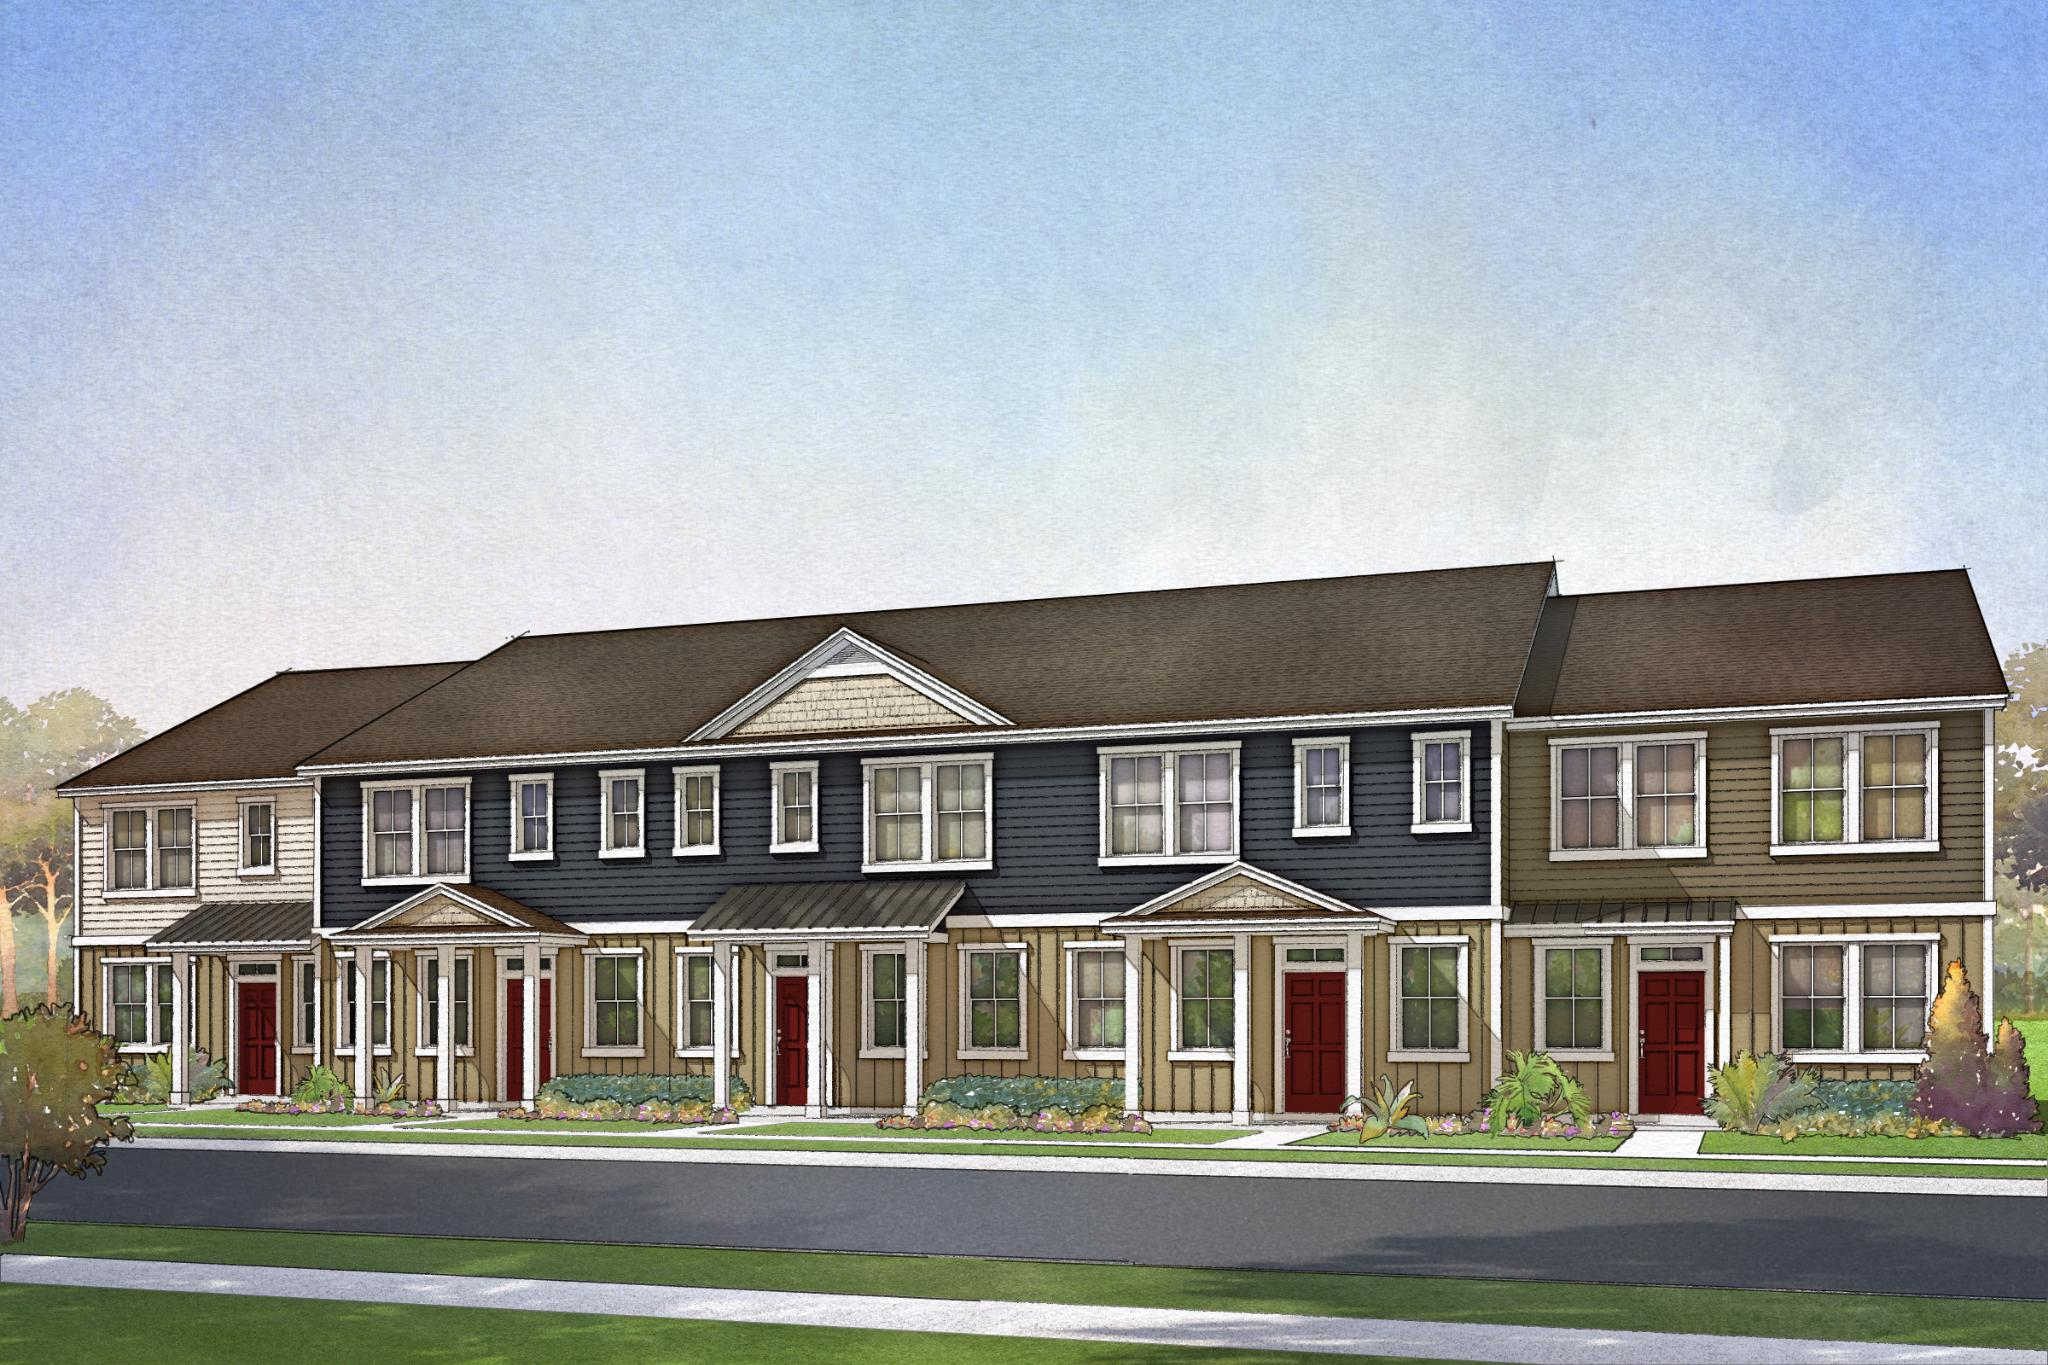 Tributary Building M Rendering